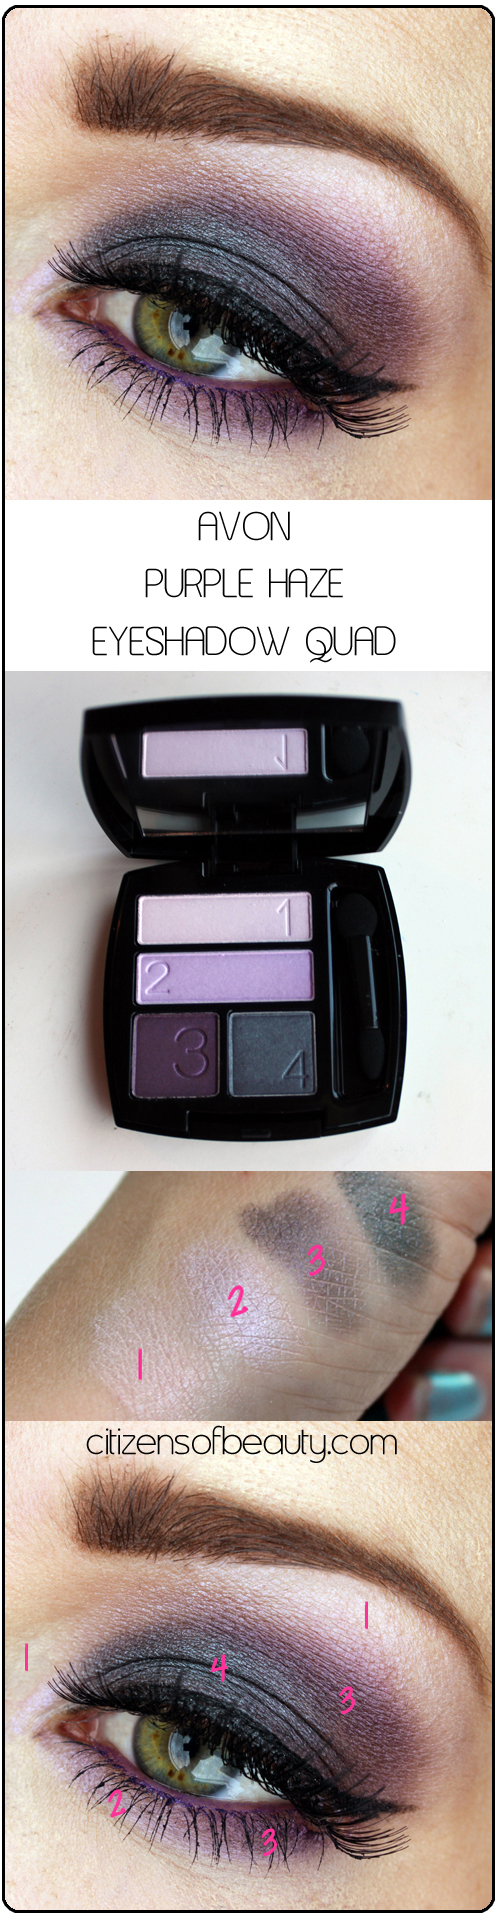 AVON_Purple_Haze_eyeshadow_quad